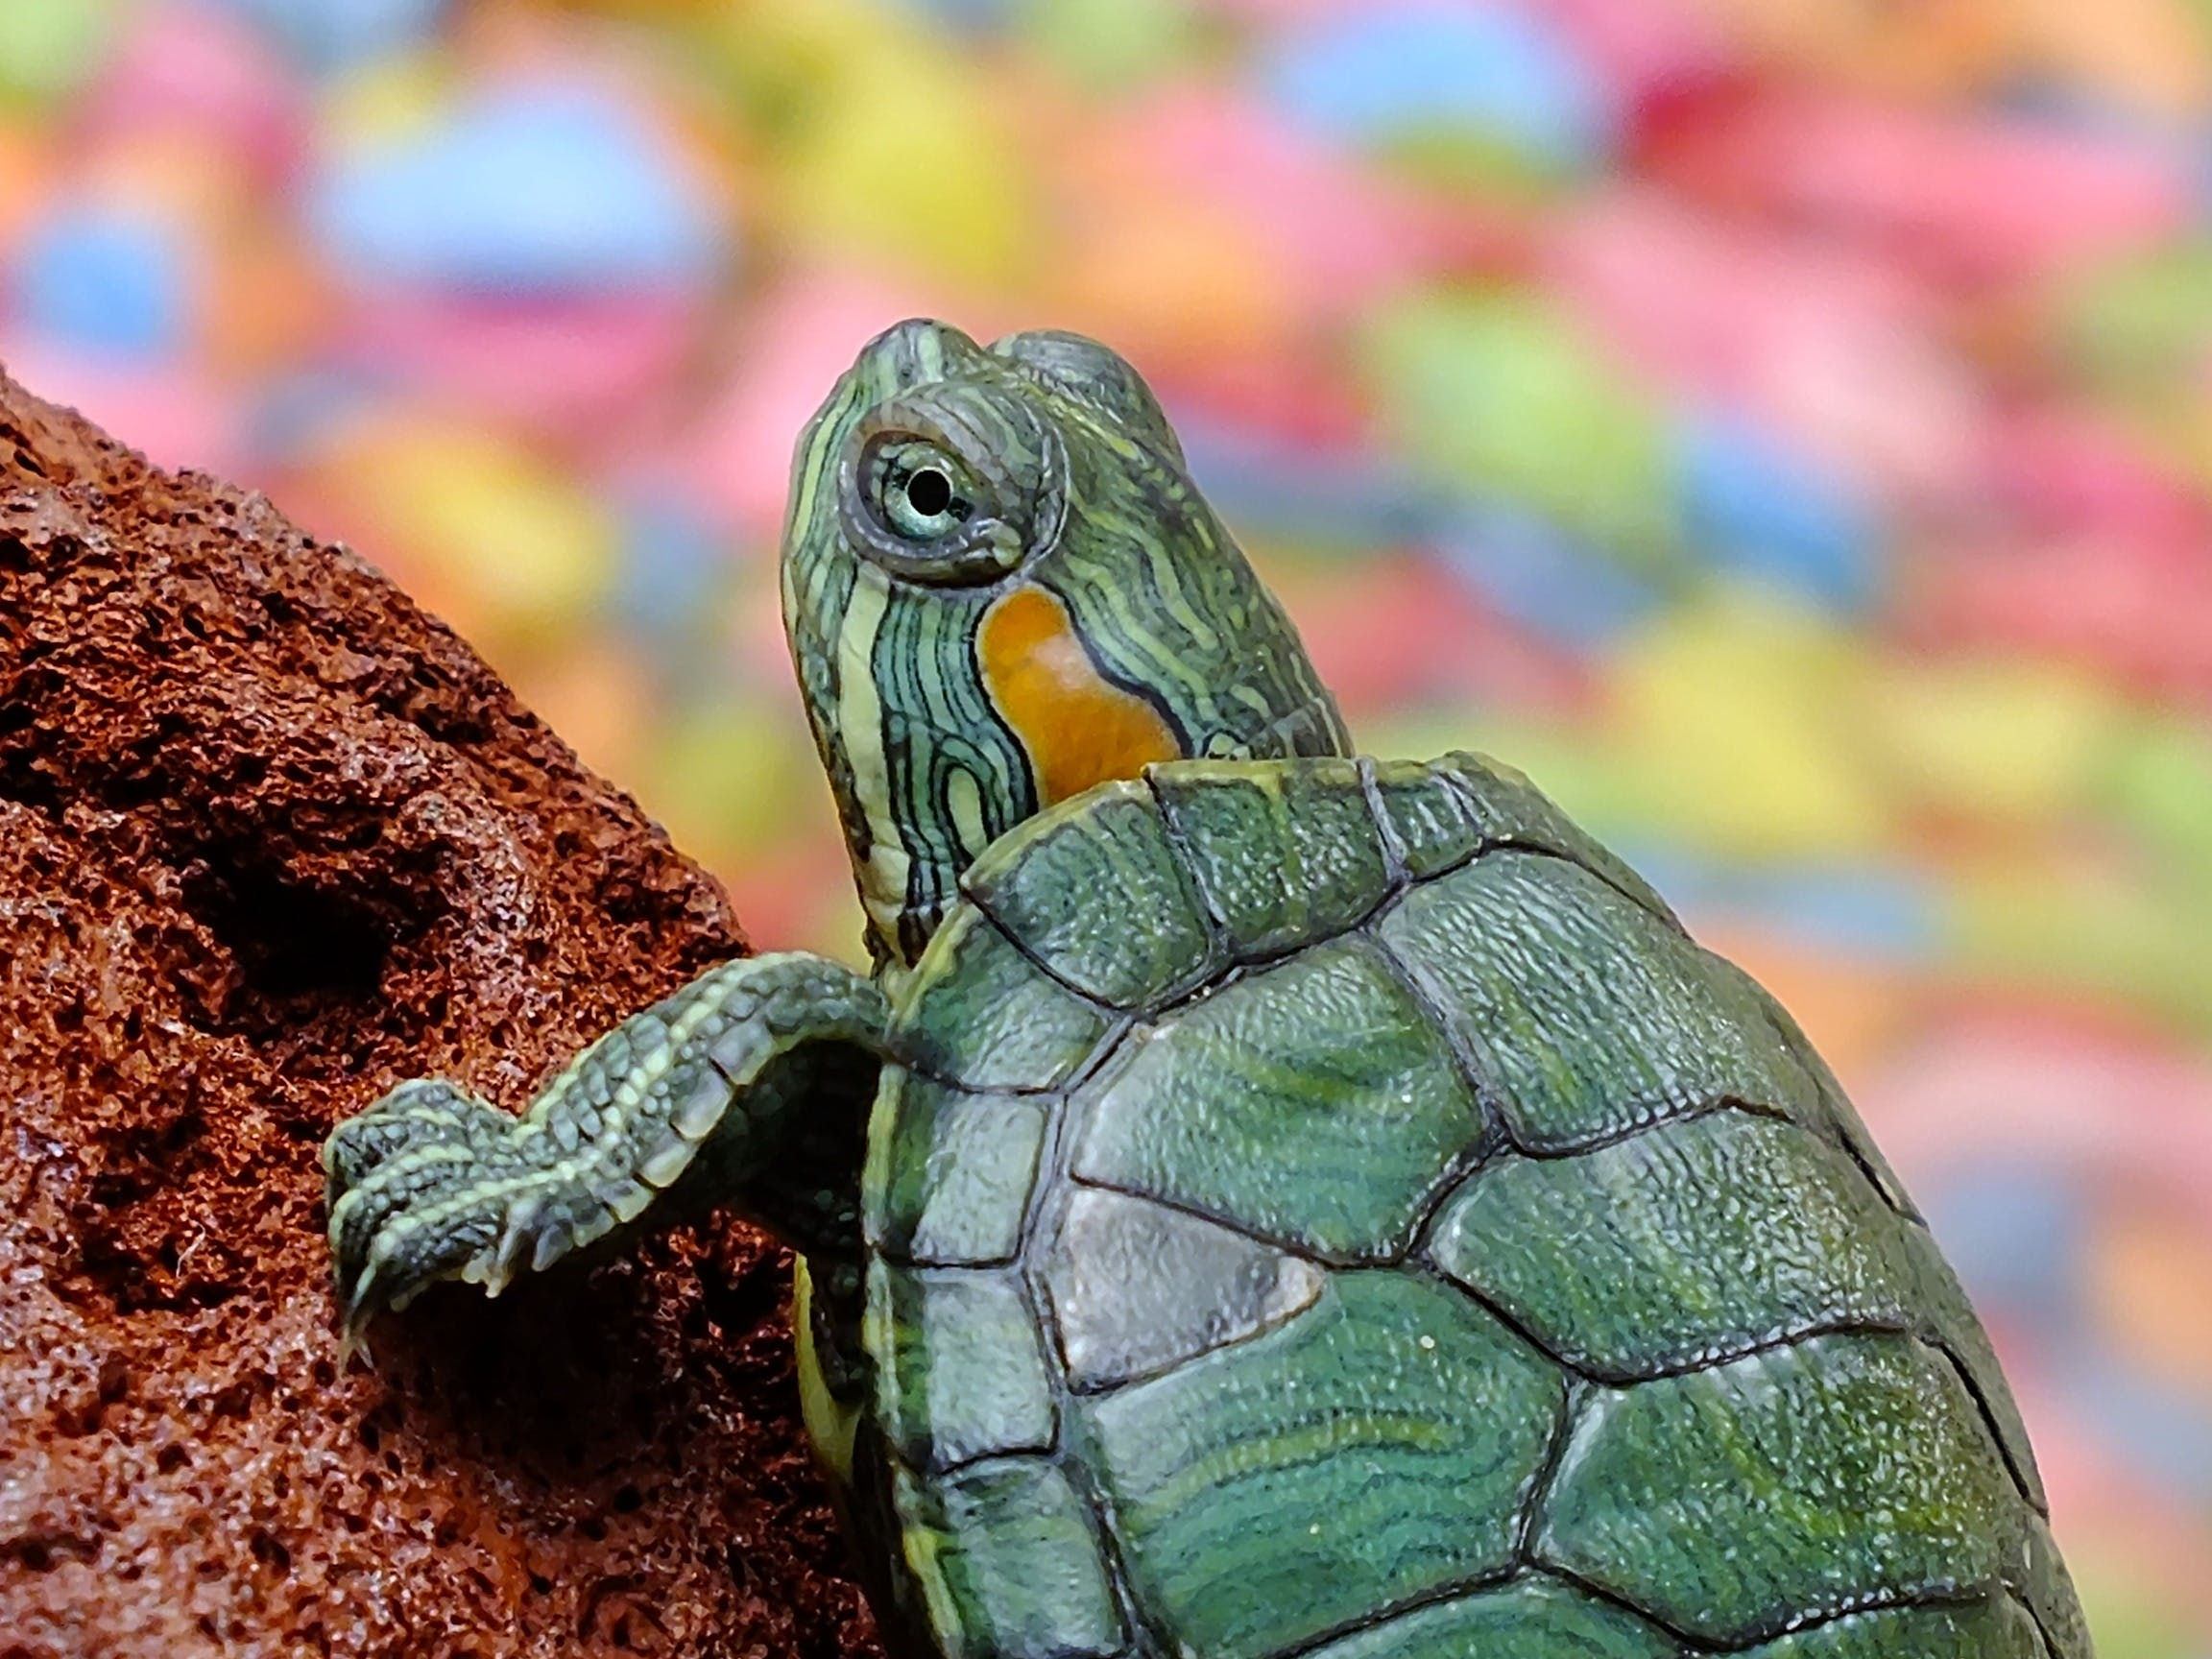 Free stock photo of animal, reptile, macro, turtle